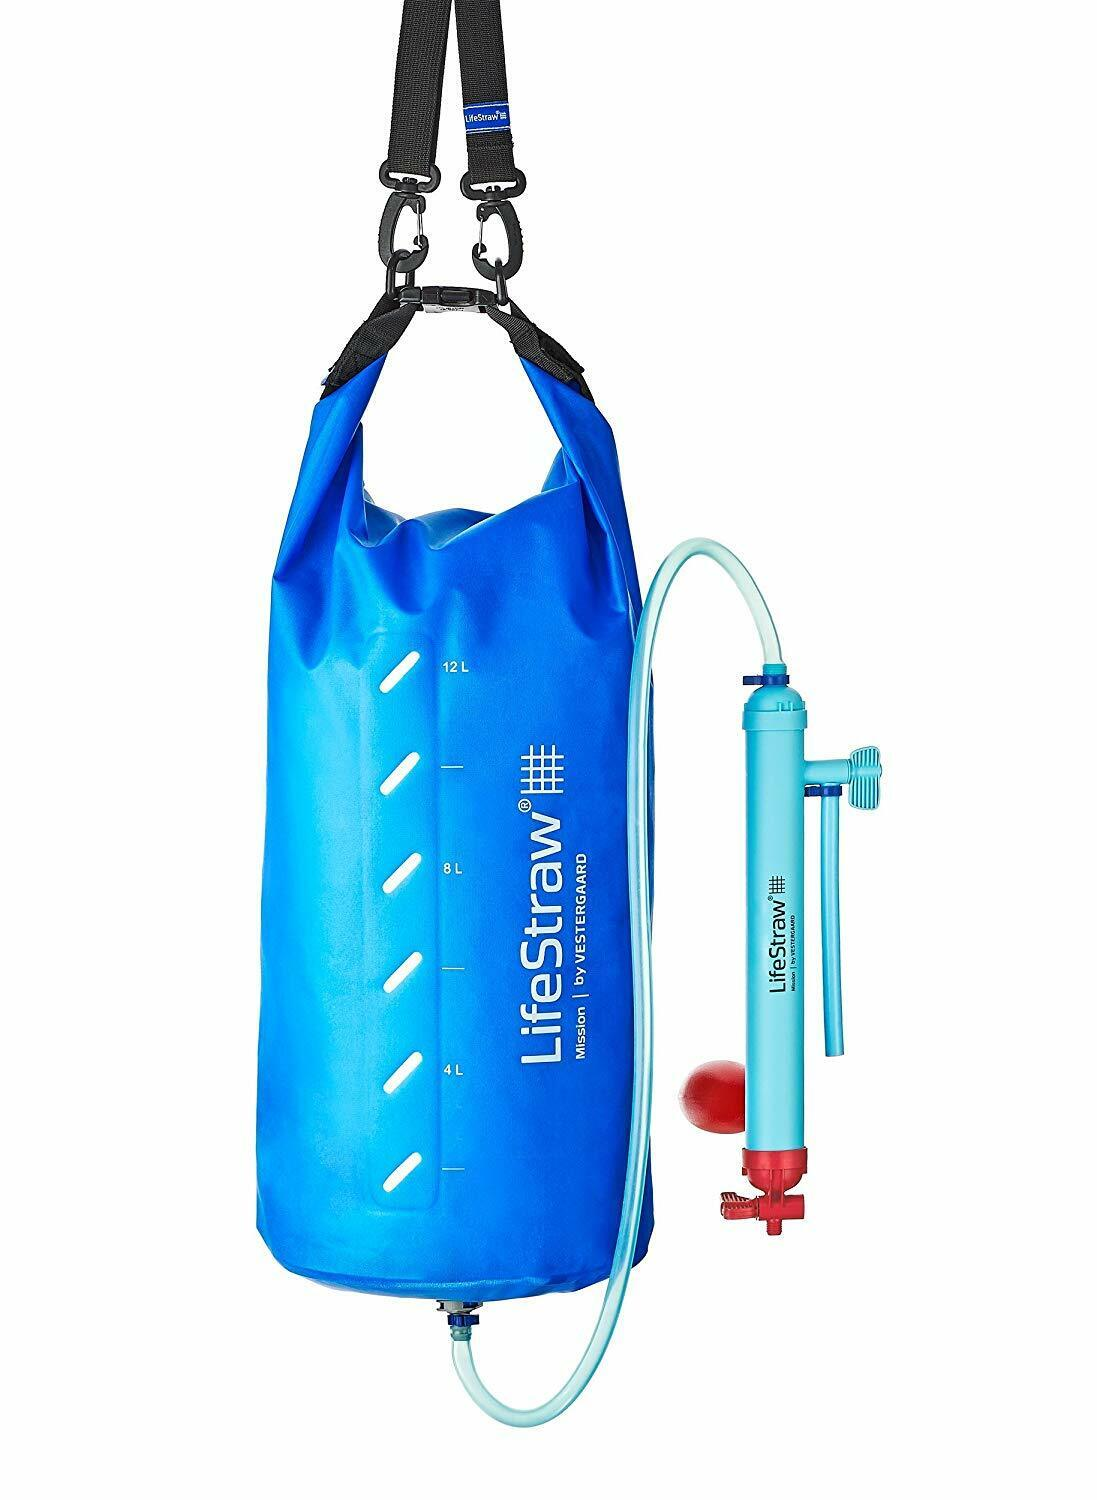 LifeStraw Mission Water Purification System 12 Liter Gravity Fed Purifier